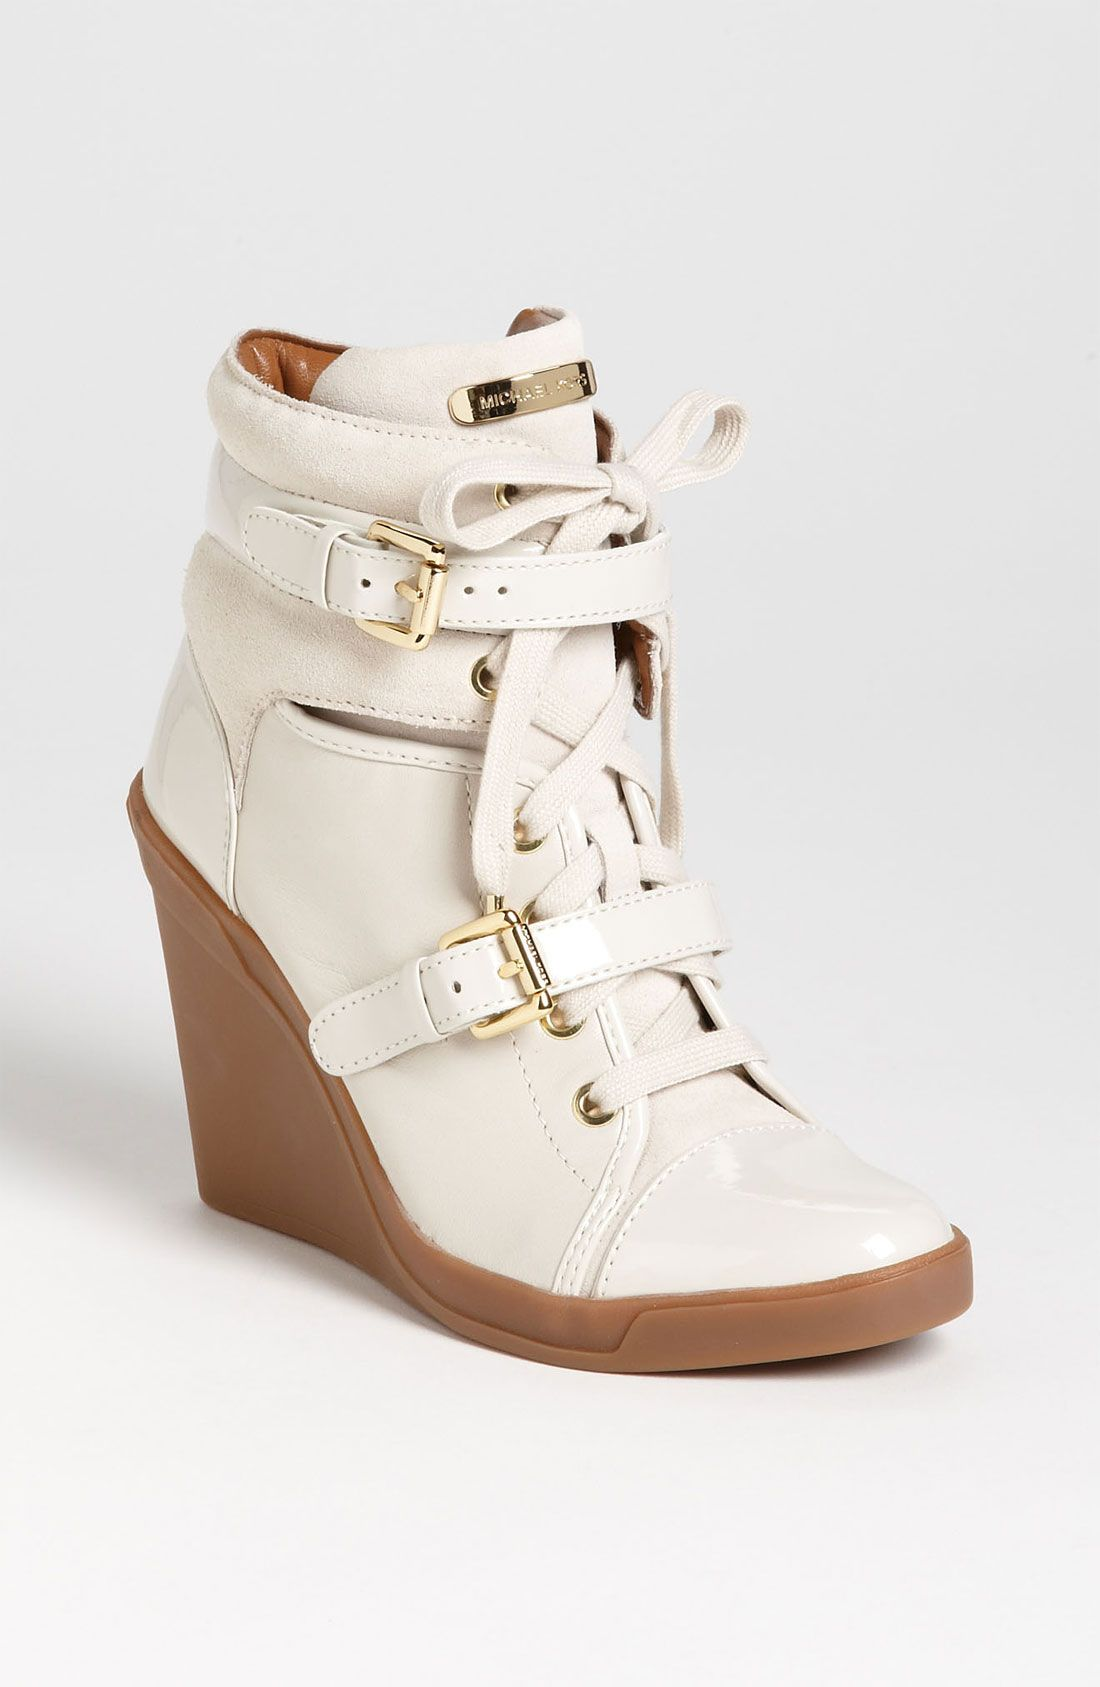 ed9dcffe3b1b Buy michael kors shoes nordstrom   OFF58% Discounted